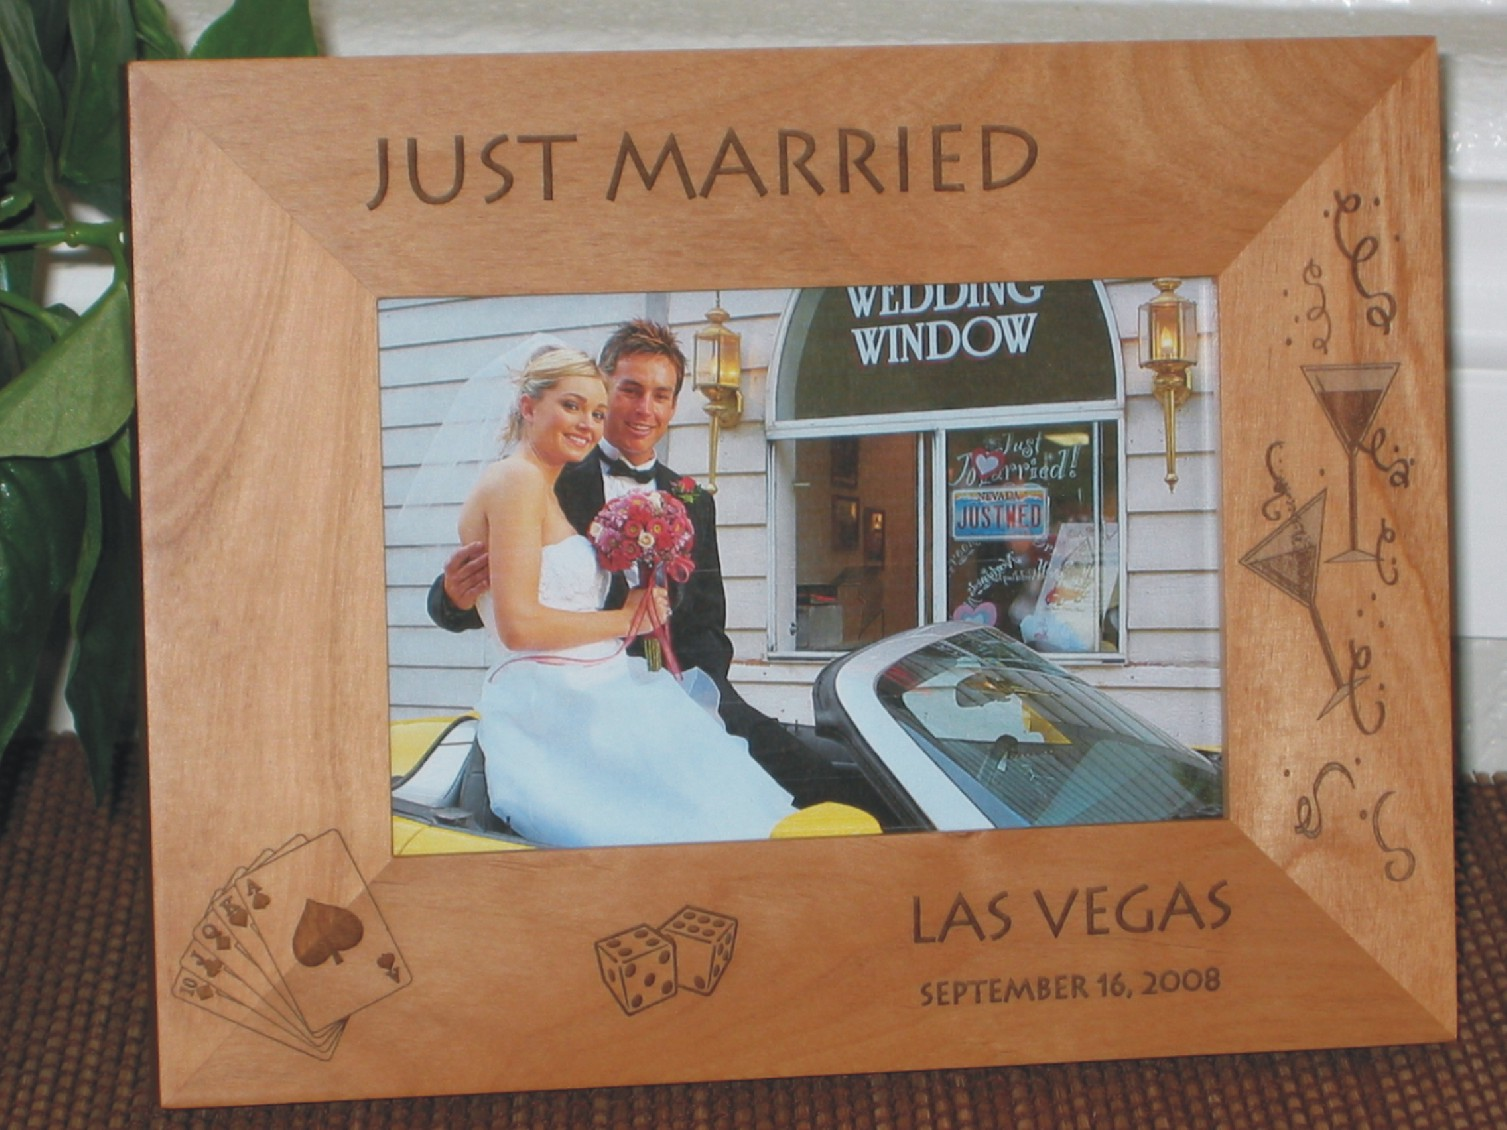 Las Vegas Picture Frame - Personalized Frame - Laser Engraved New Years